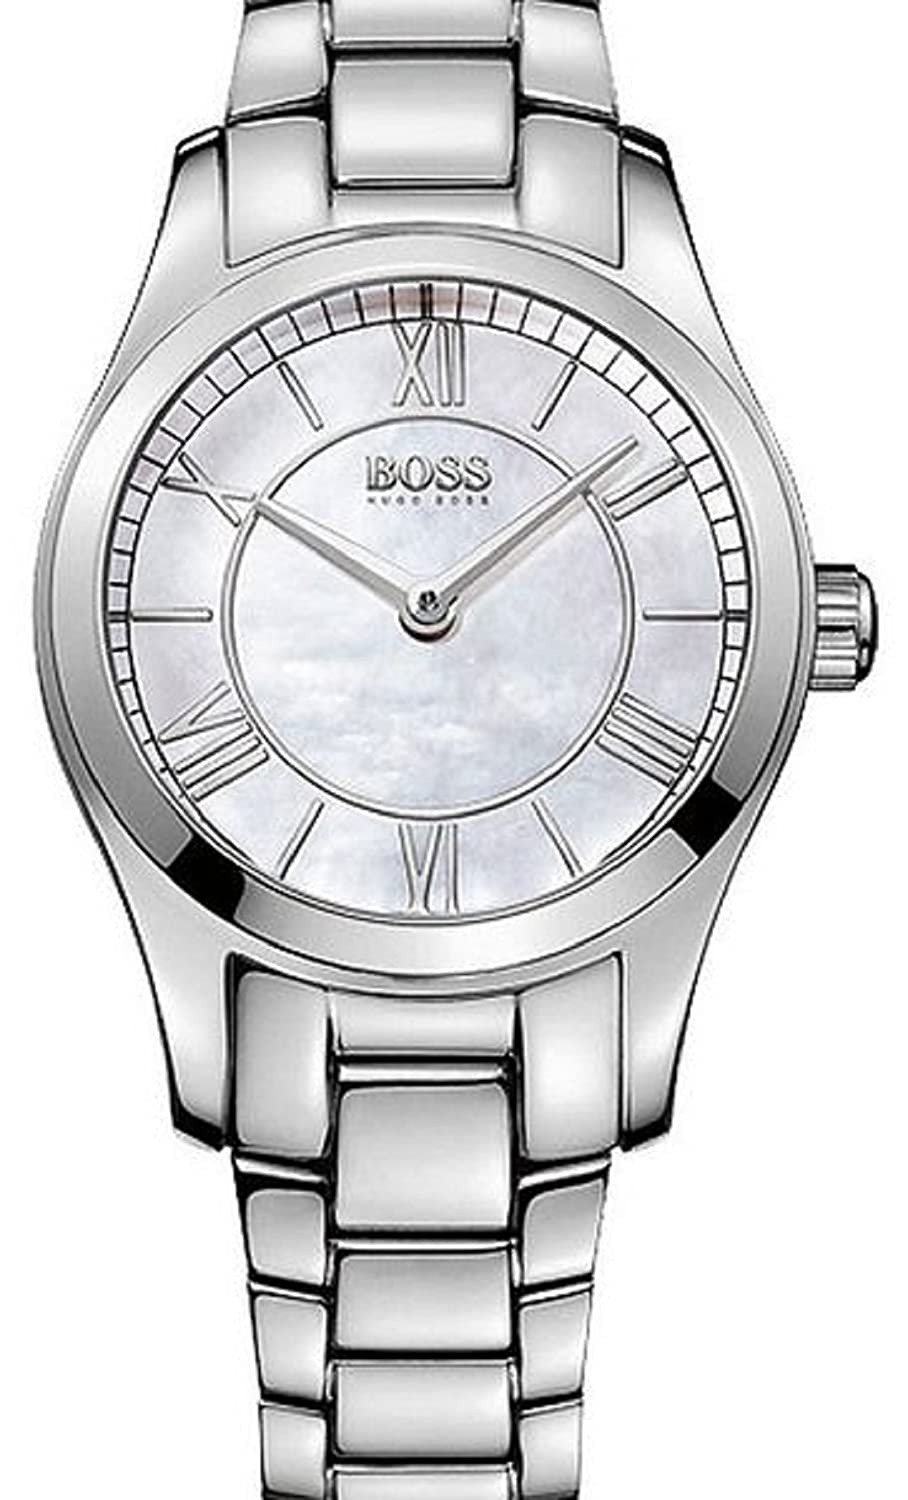 Damen-Armbanduhr Hugo Boss 1502377 (24 mm)